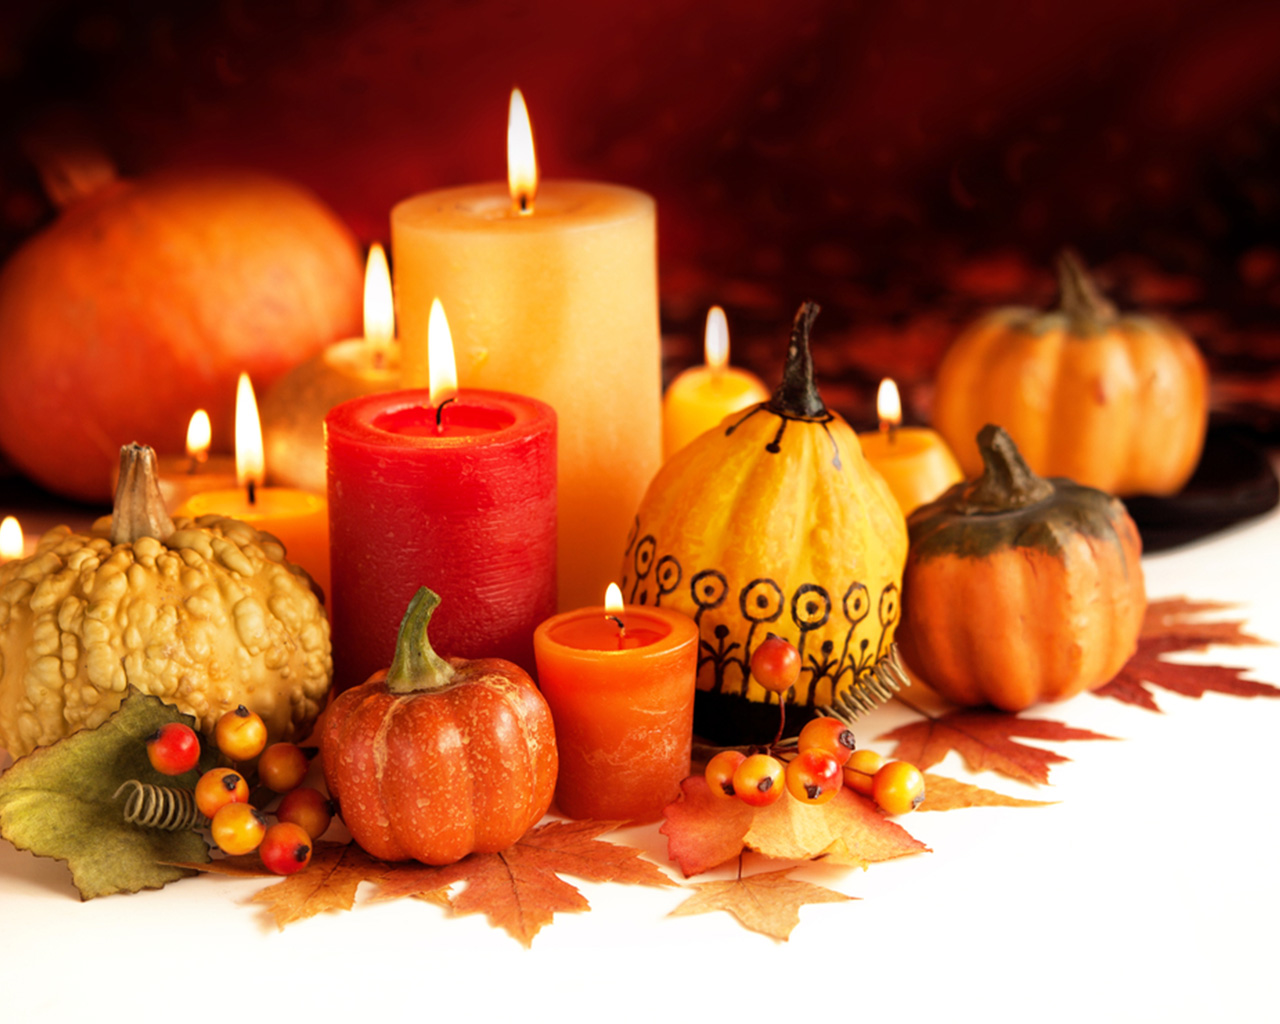 waxy thanksgiving wallpapers images download #1705